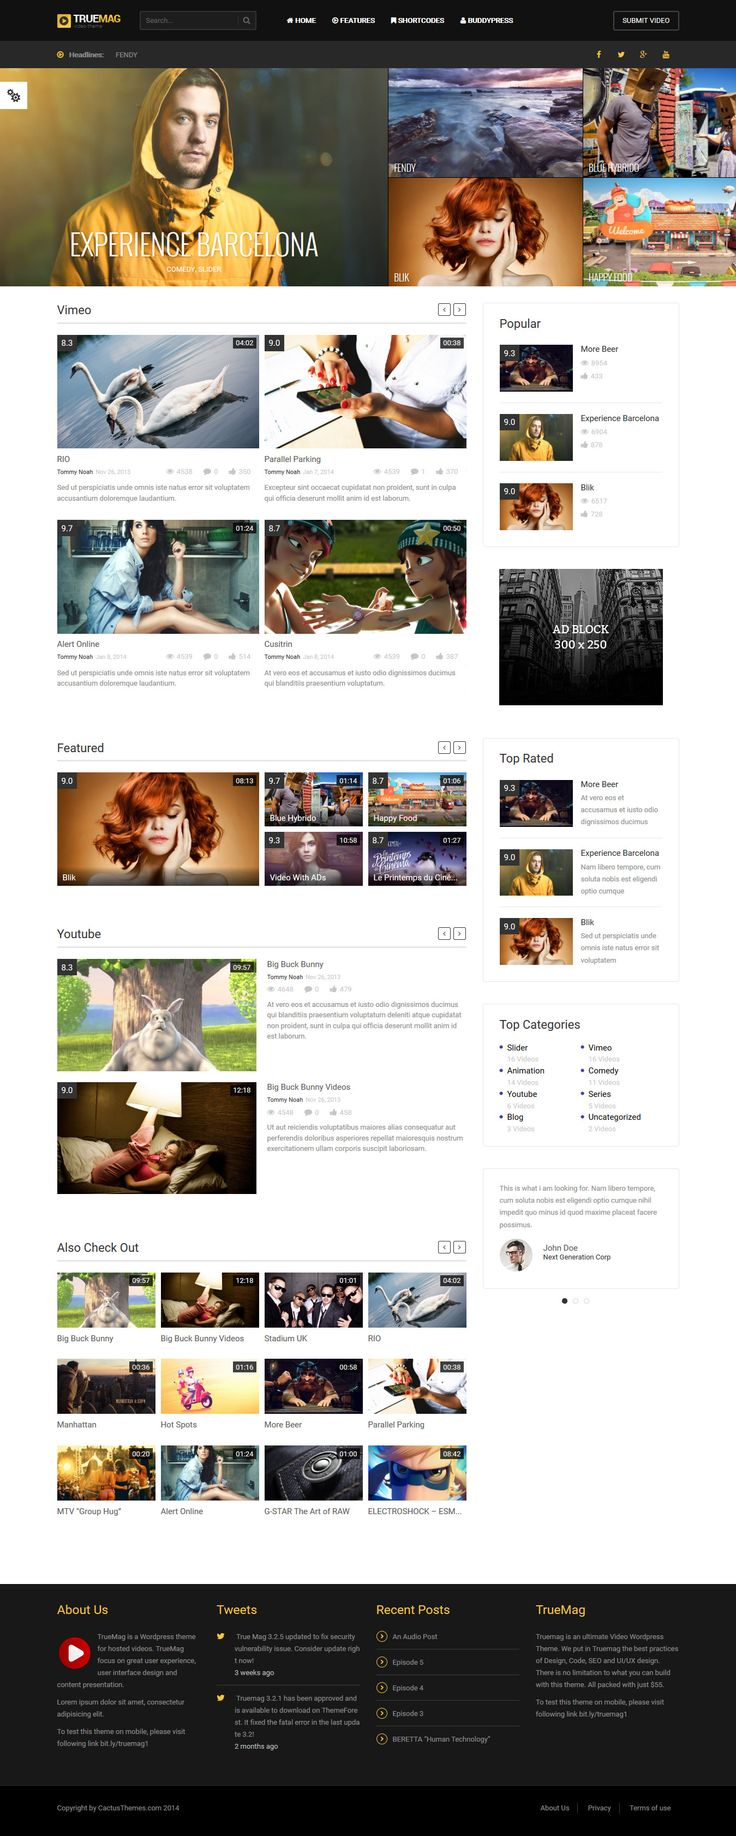 True Mag - Wordpress Theme for Video and Magazine #wordpress Live Preview and Download: http://themeforest.net/item/true-mag-wordpress-theme-for-video-and-magazine/6755267?ref=ksioks